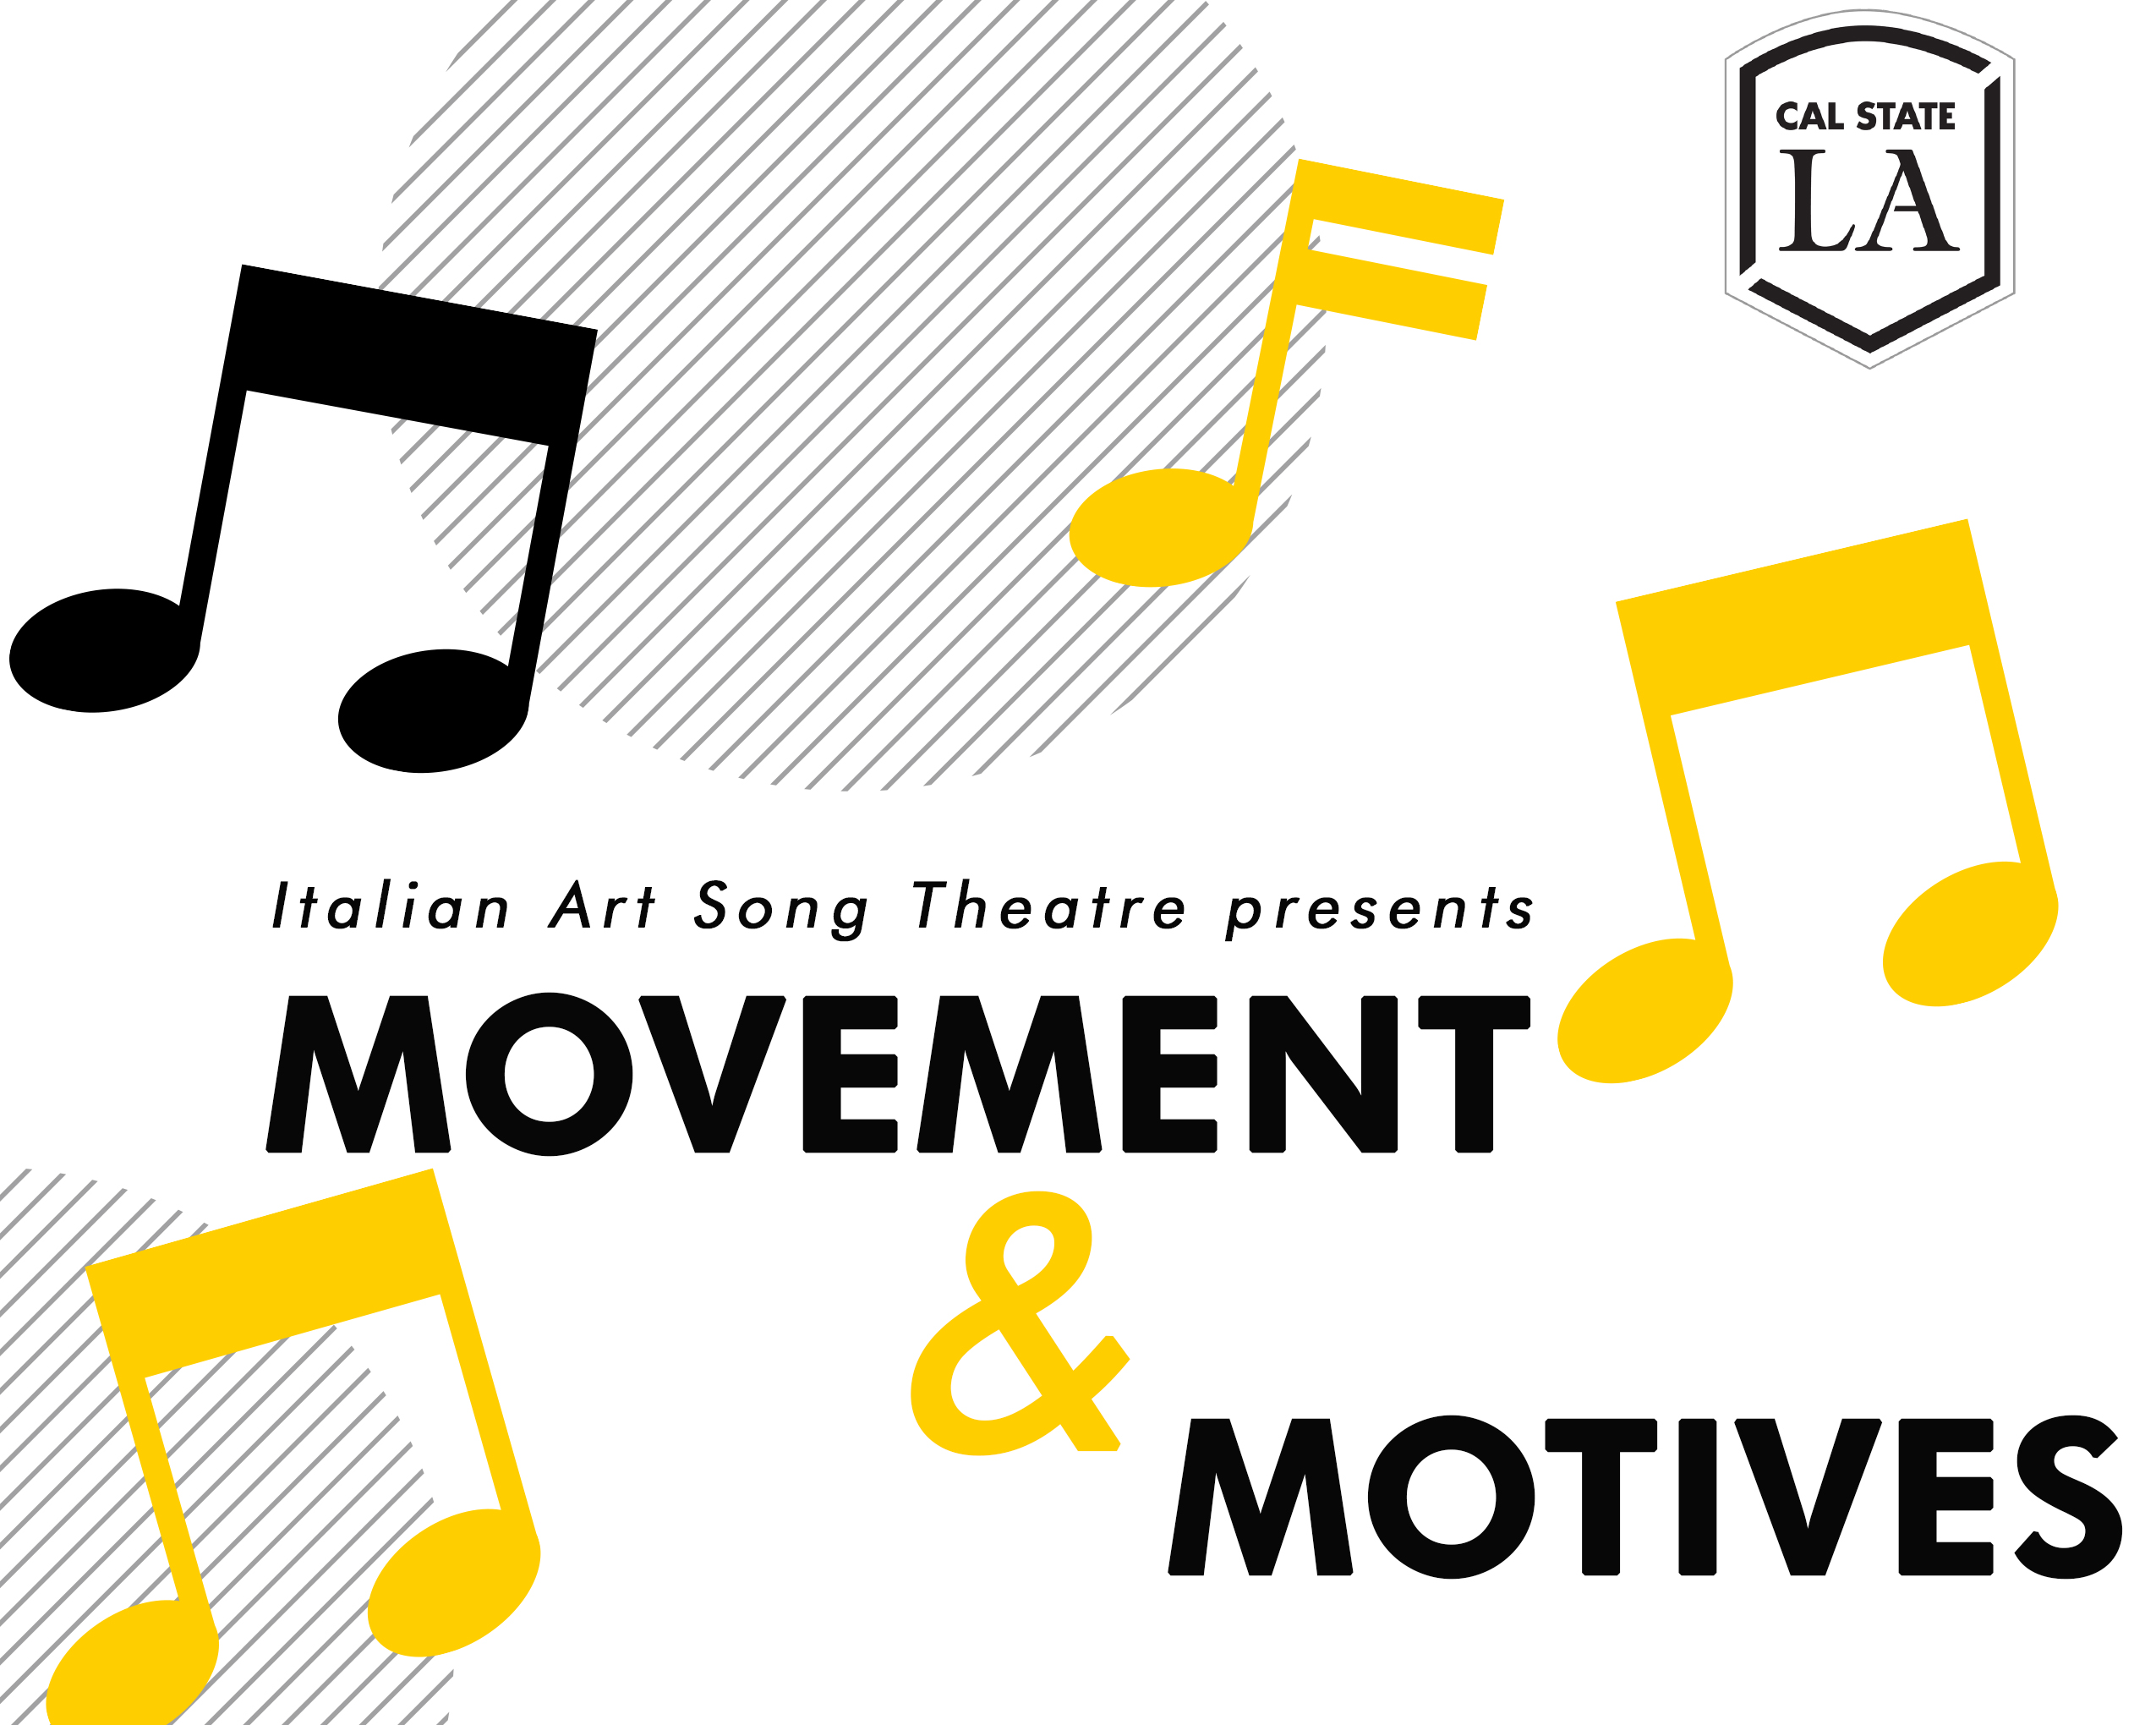 Movement and Motives Concert